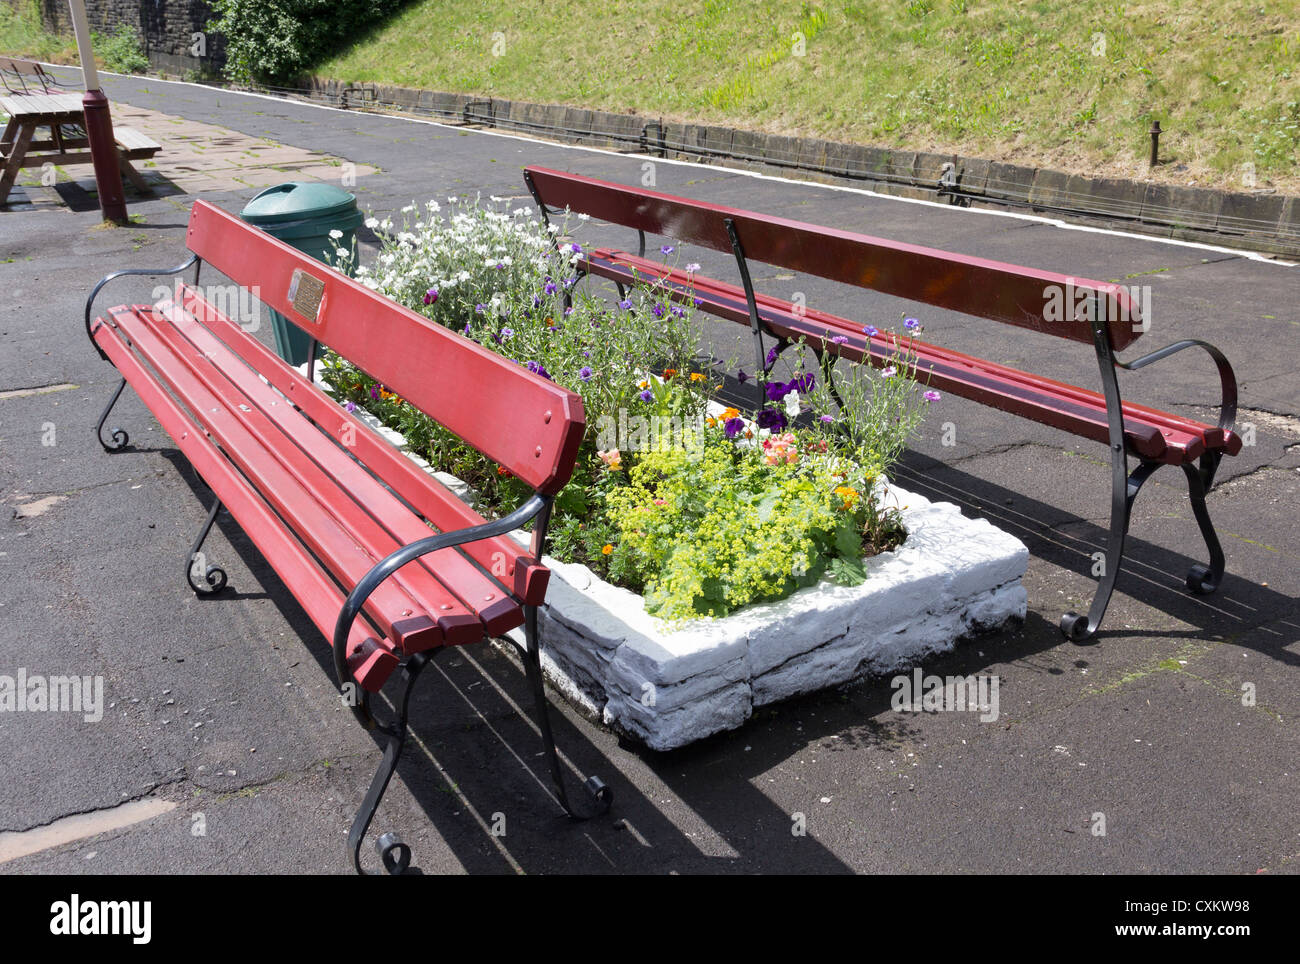 Wooden Slat Bench Seats On The Railway Platform At Bury Station On